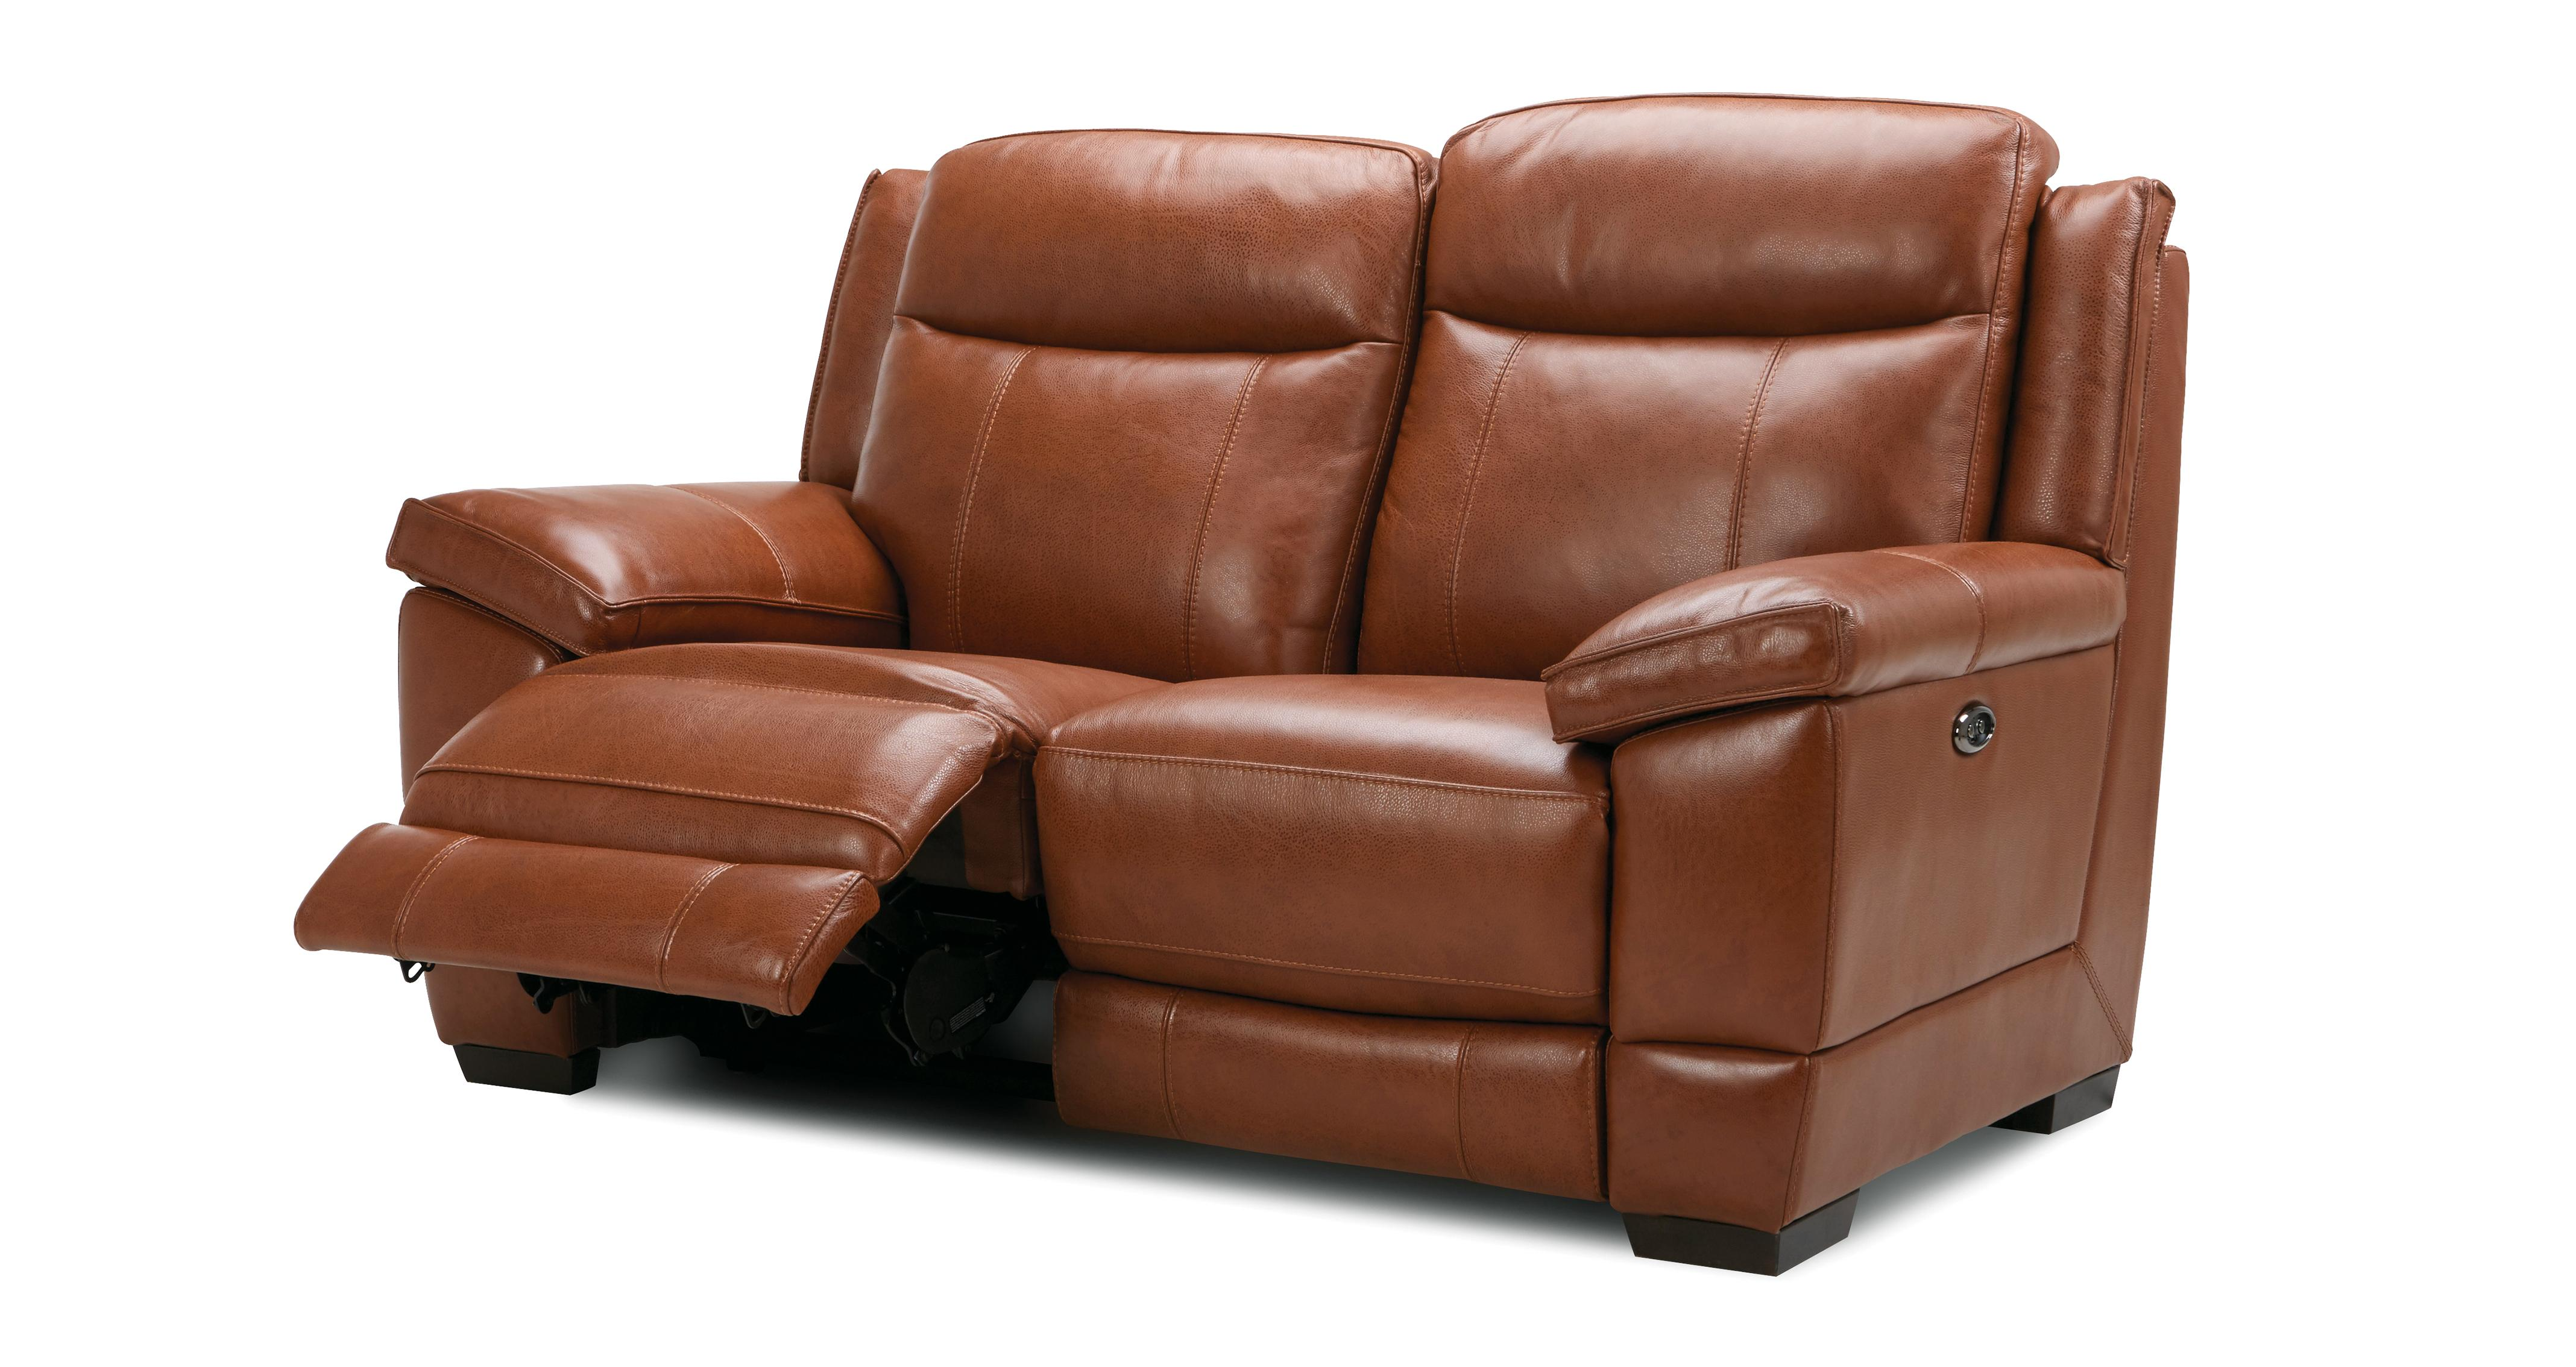 Braxton Clearance 3 Amp 2 Seater Power Recliners Power